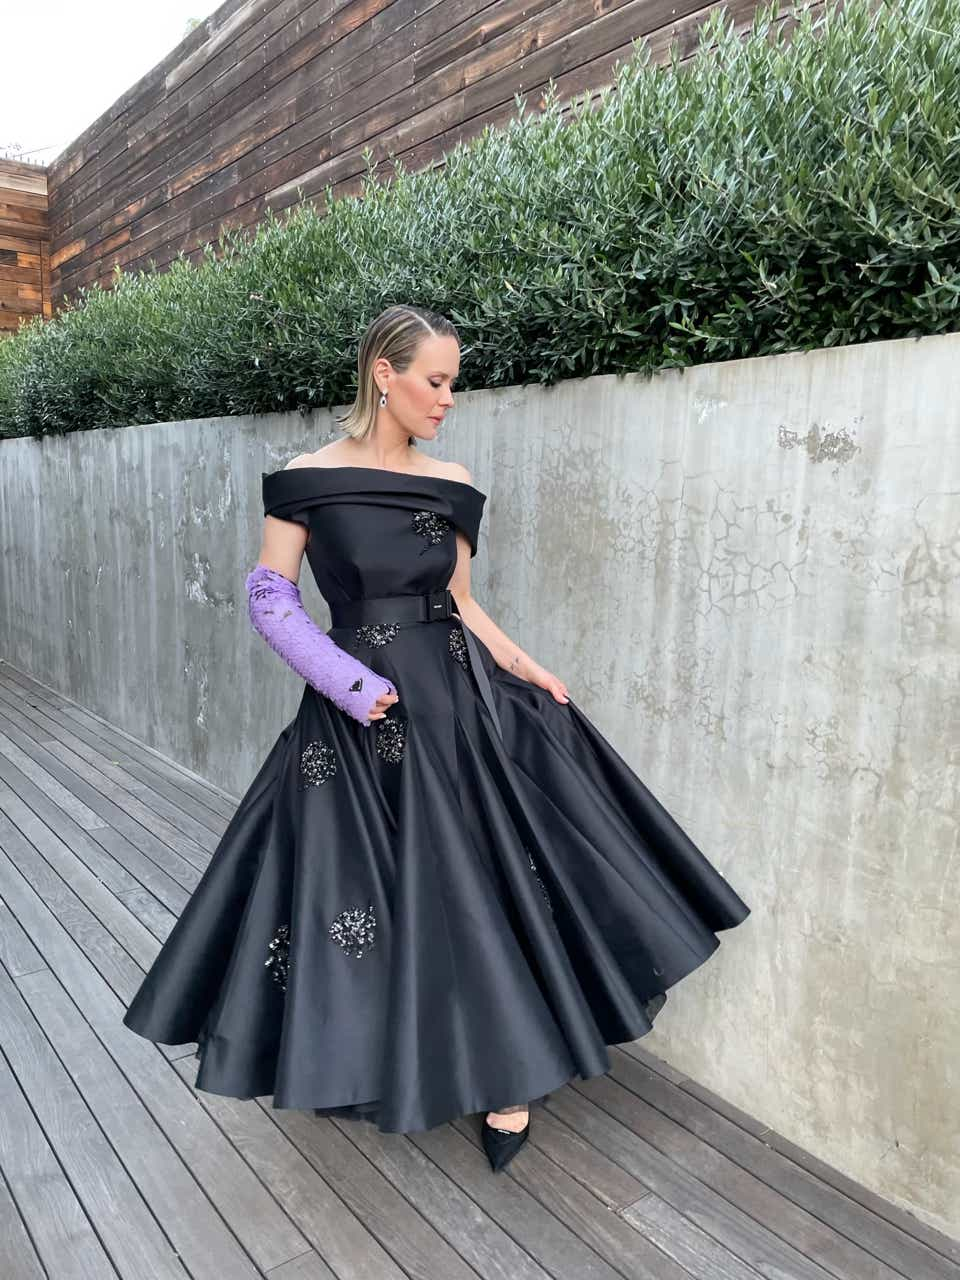 Sarah Paulson posing outside in a black Prada dress with a purple cast for the Golden Globes.